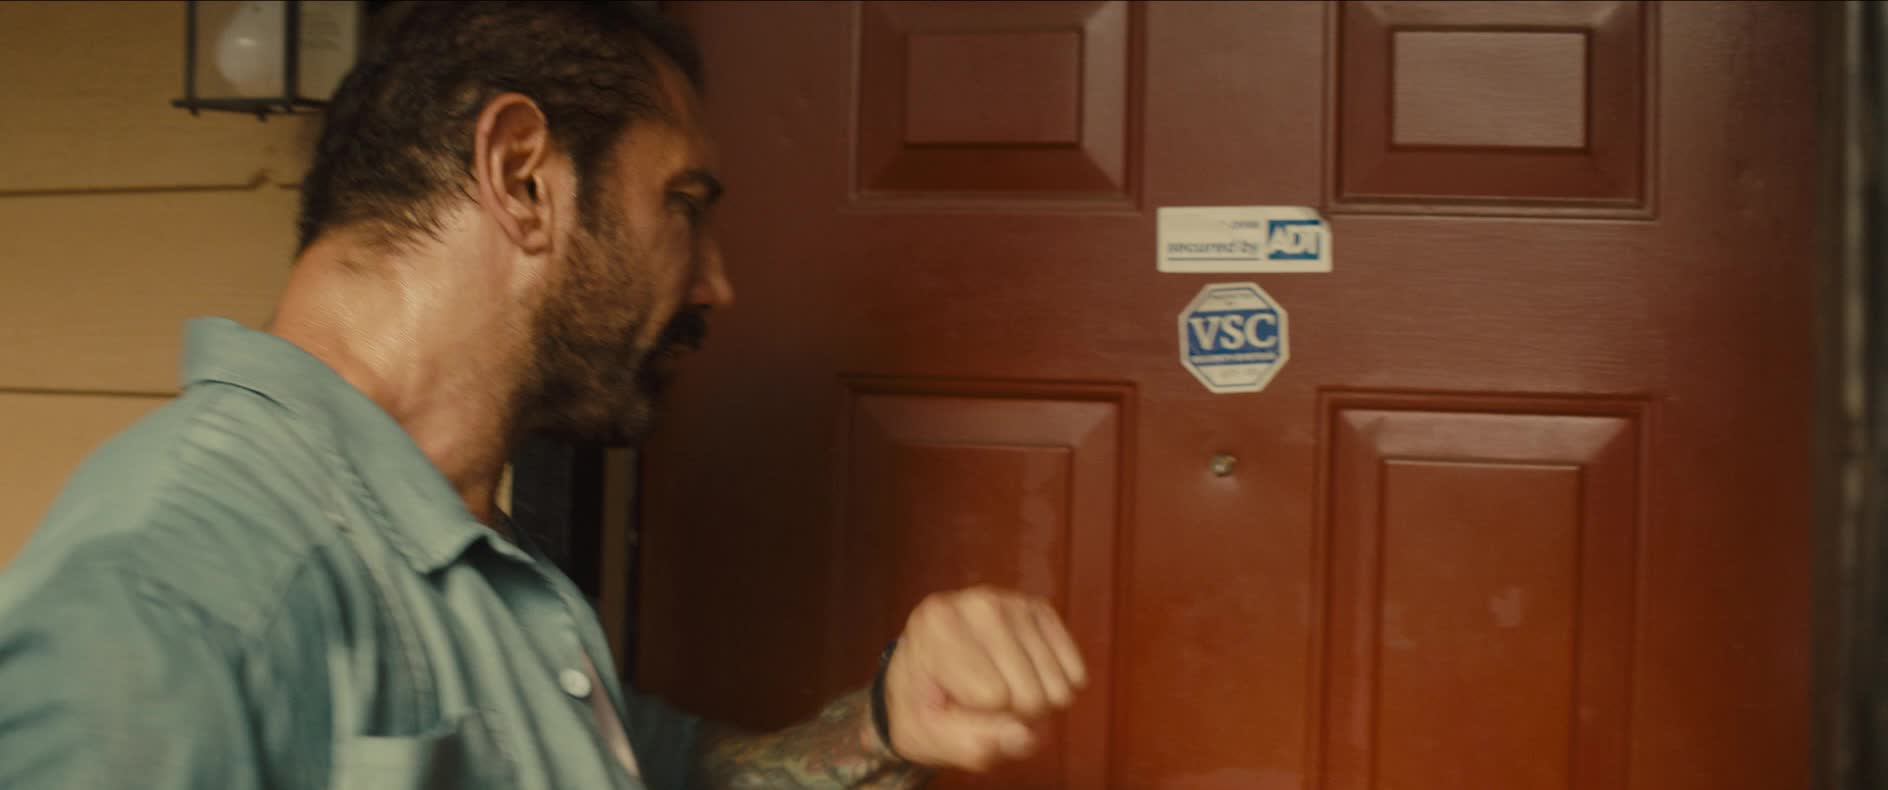 dave bautista, hello, hey, knock, knocking, stuber, stuber movie, Dave Bautista Knock Knock GIFs